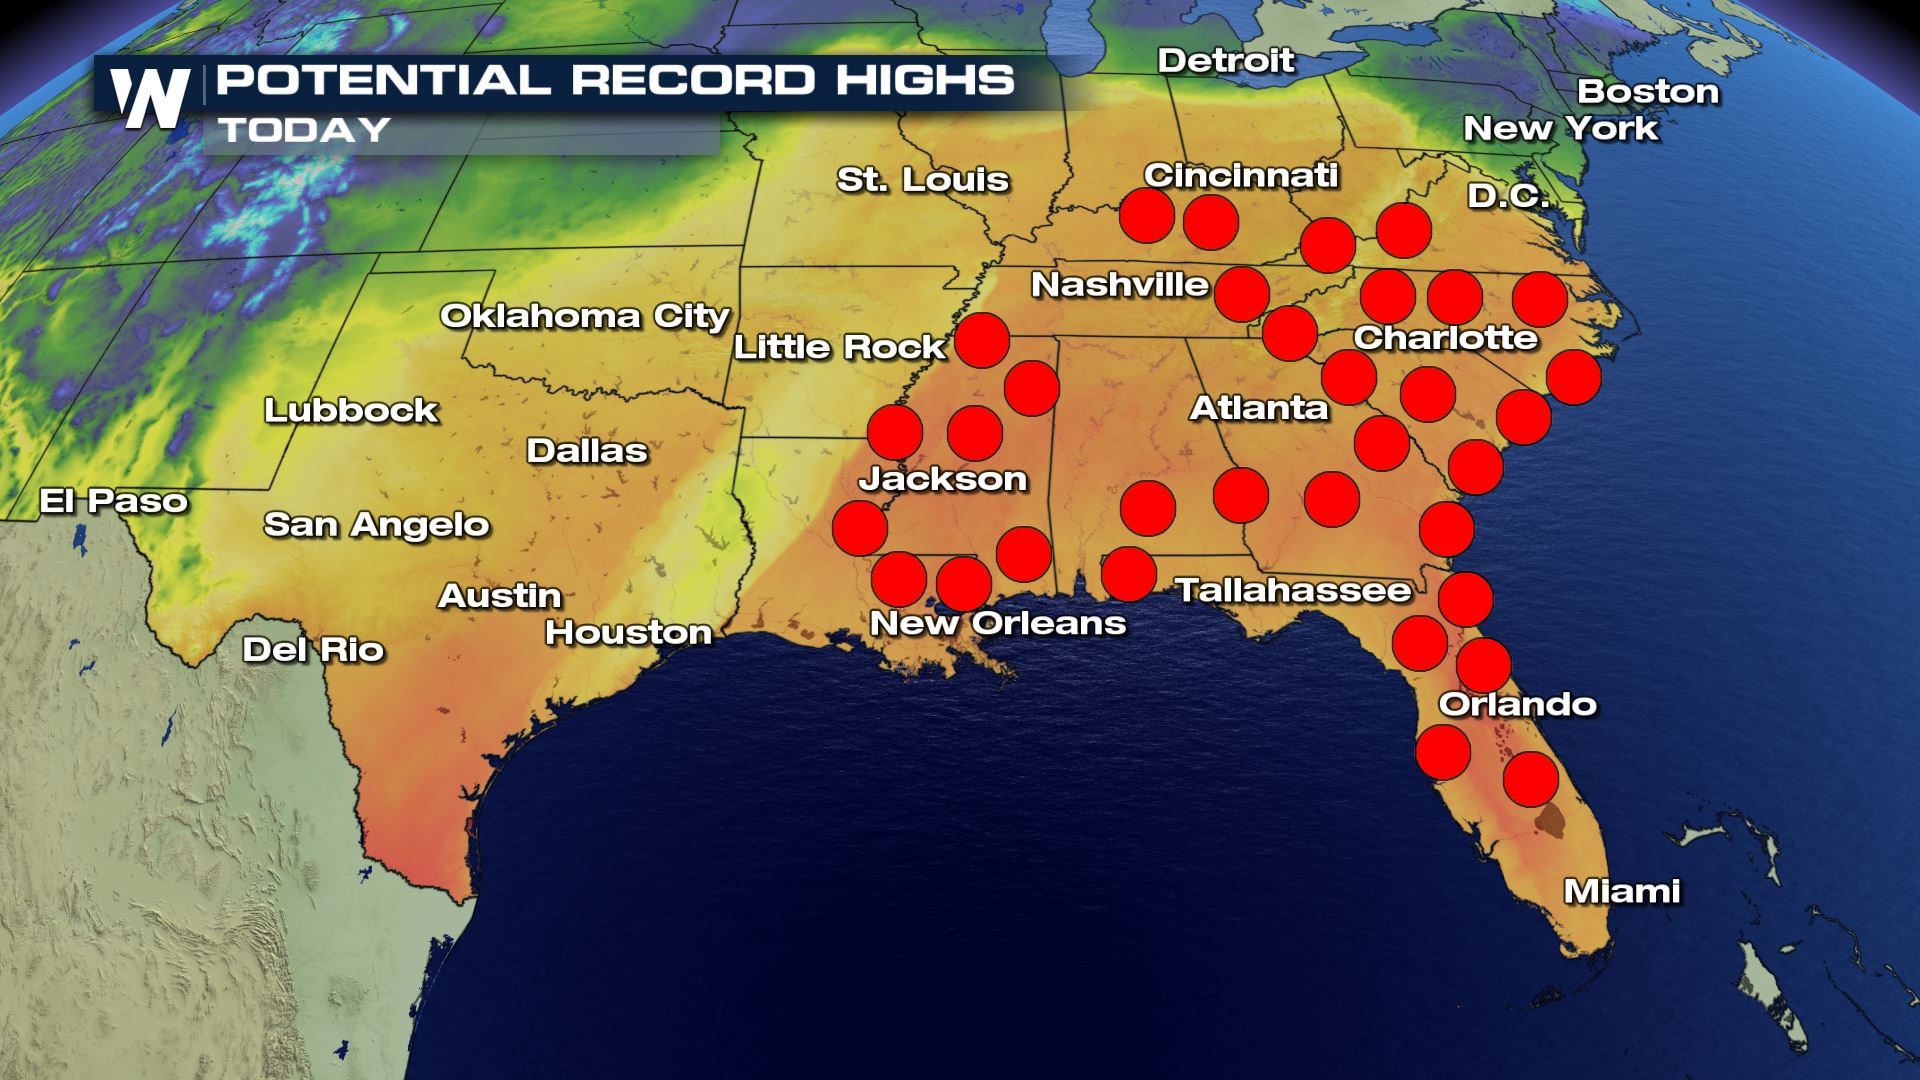 Temperatures Soar in the Southern U.S.